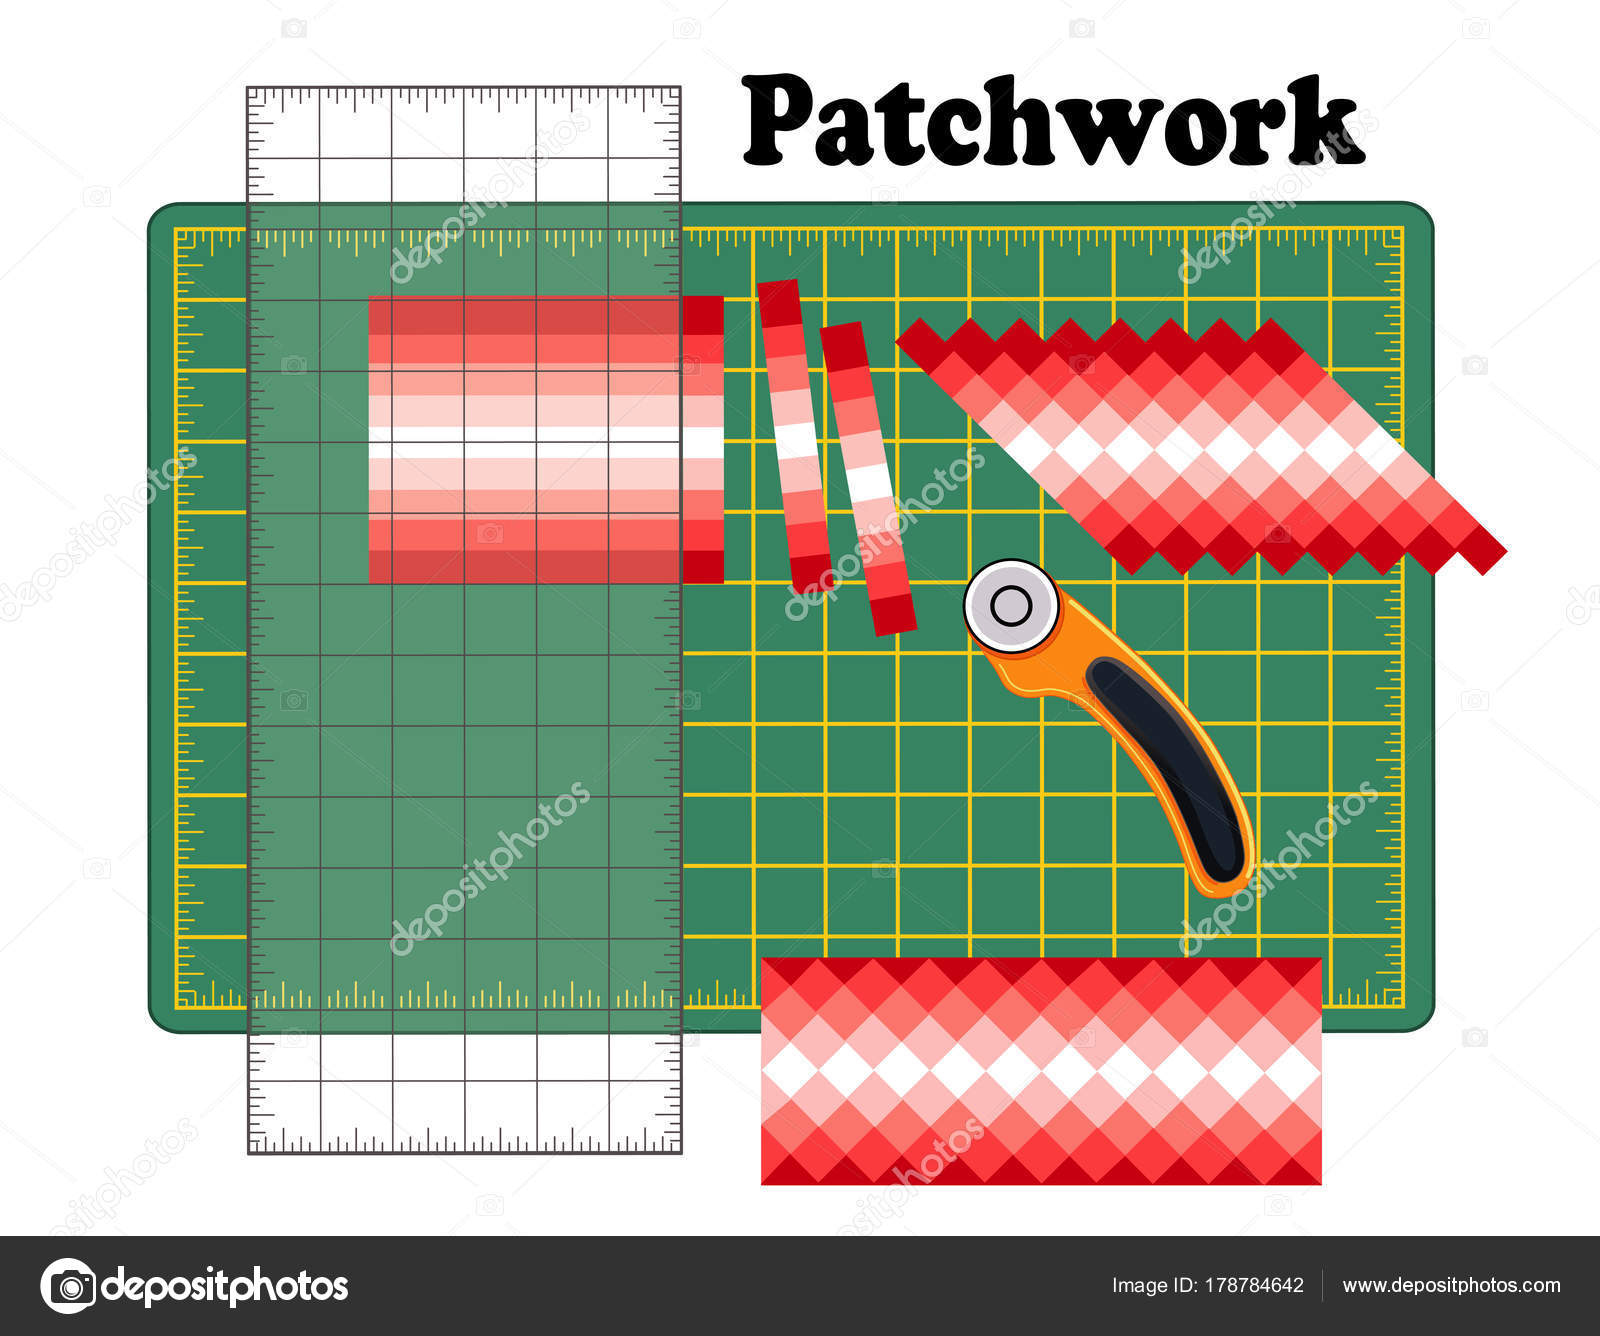 Patchwork diy cutting mat quilters ruler rotary blade cutter strip patchwork diy cutting mat quilters ruler rotary blade cutter strip piece design pattern cut fabric into strips reorganize strips into patterns solutioingenieria Image collections